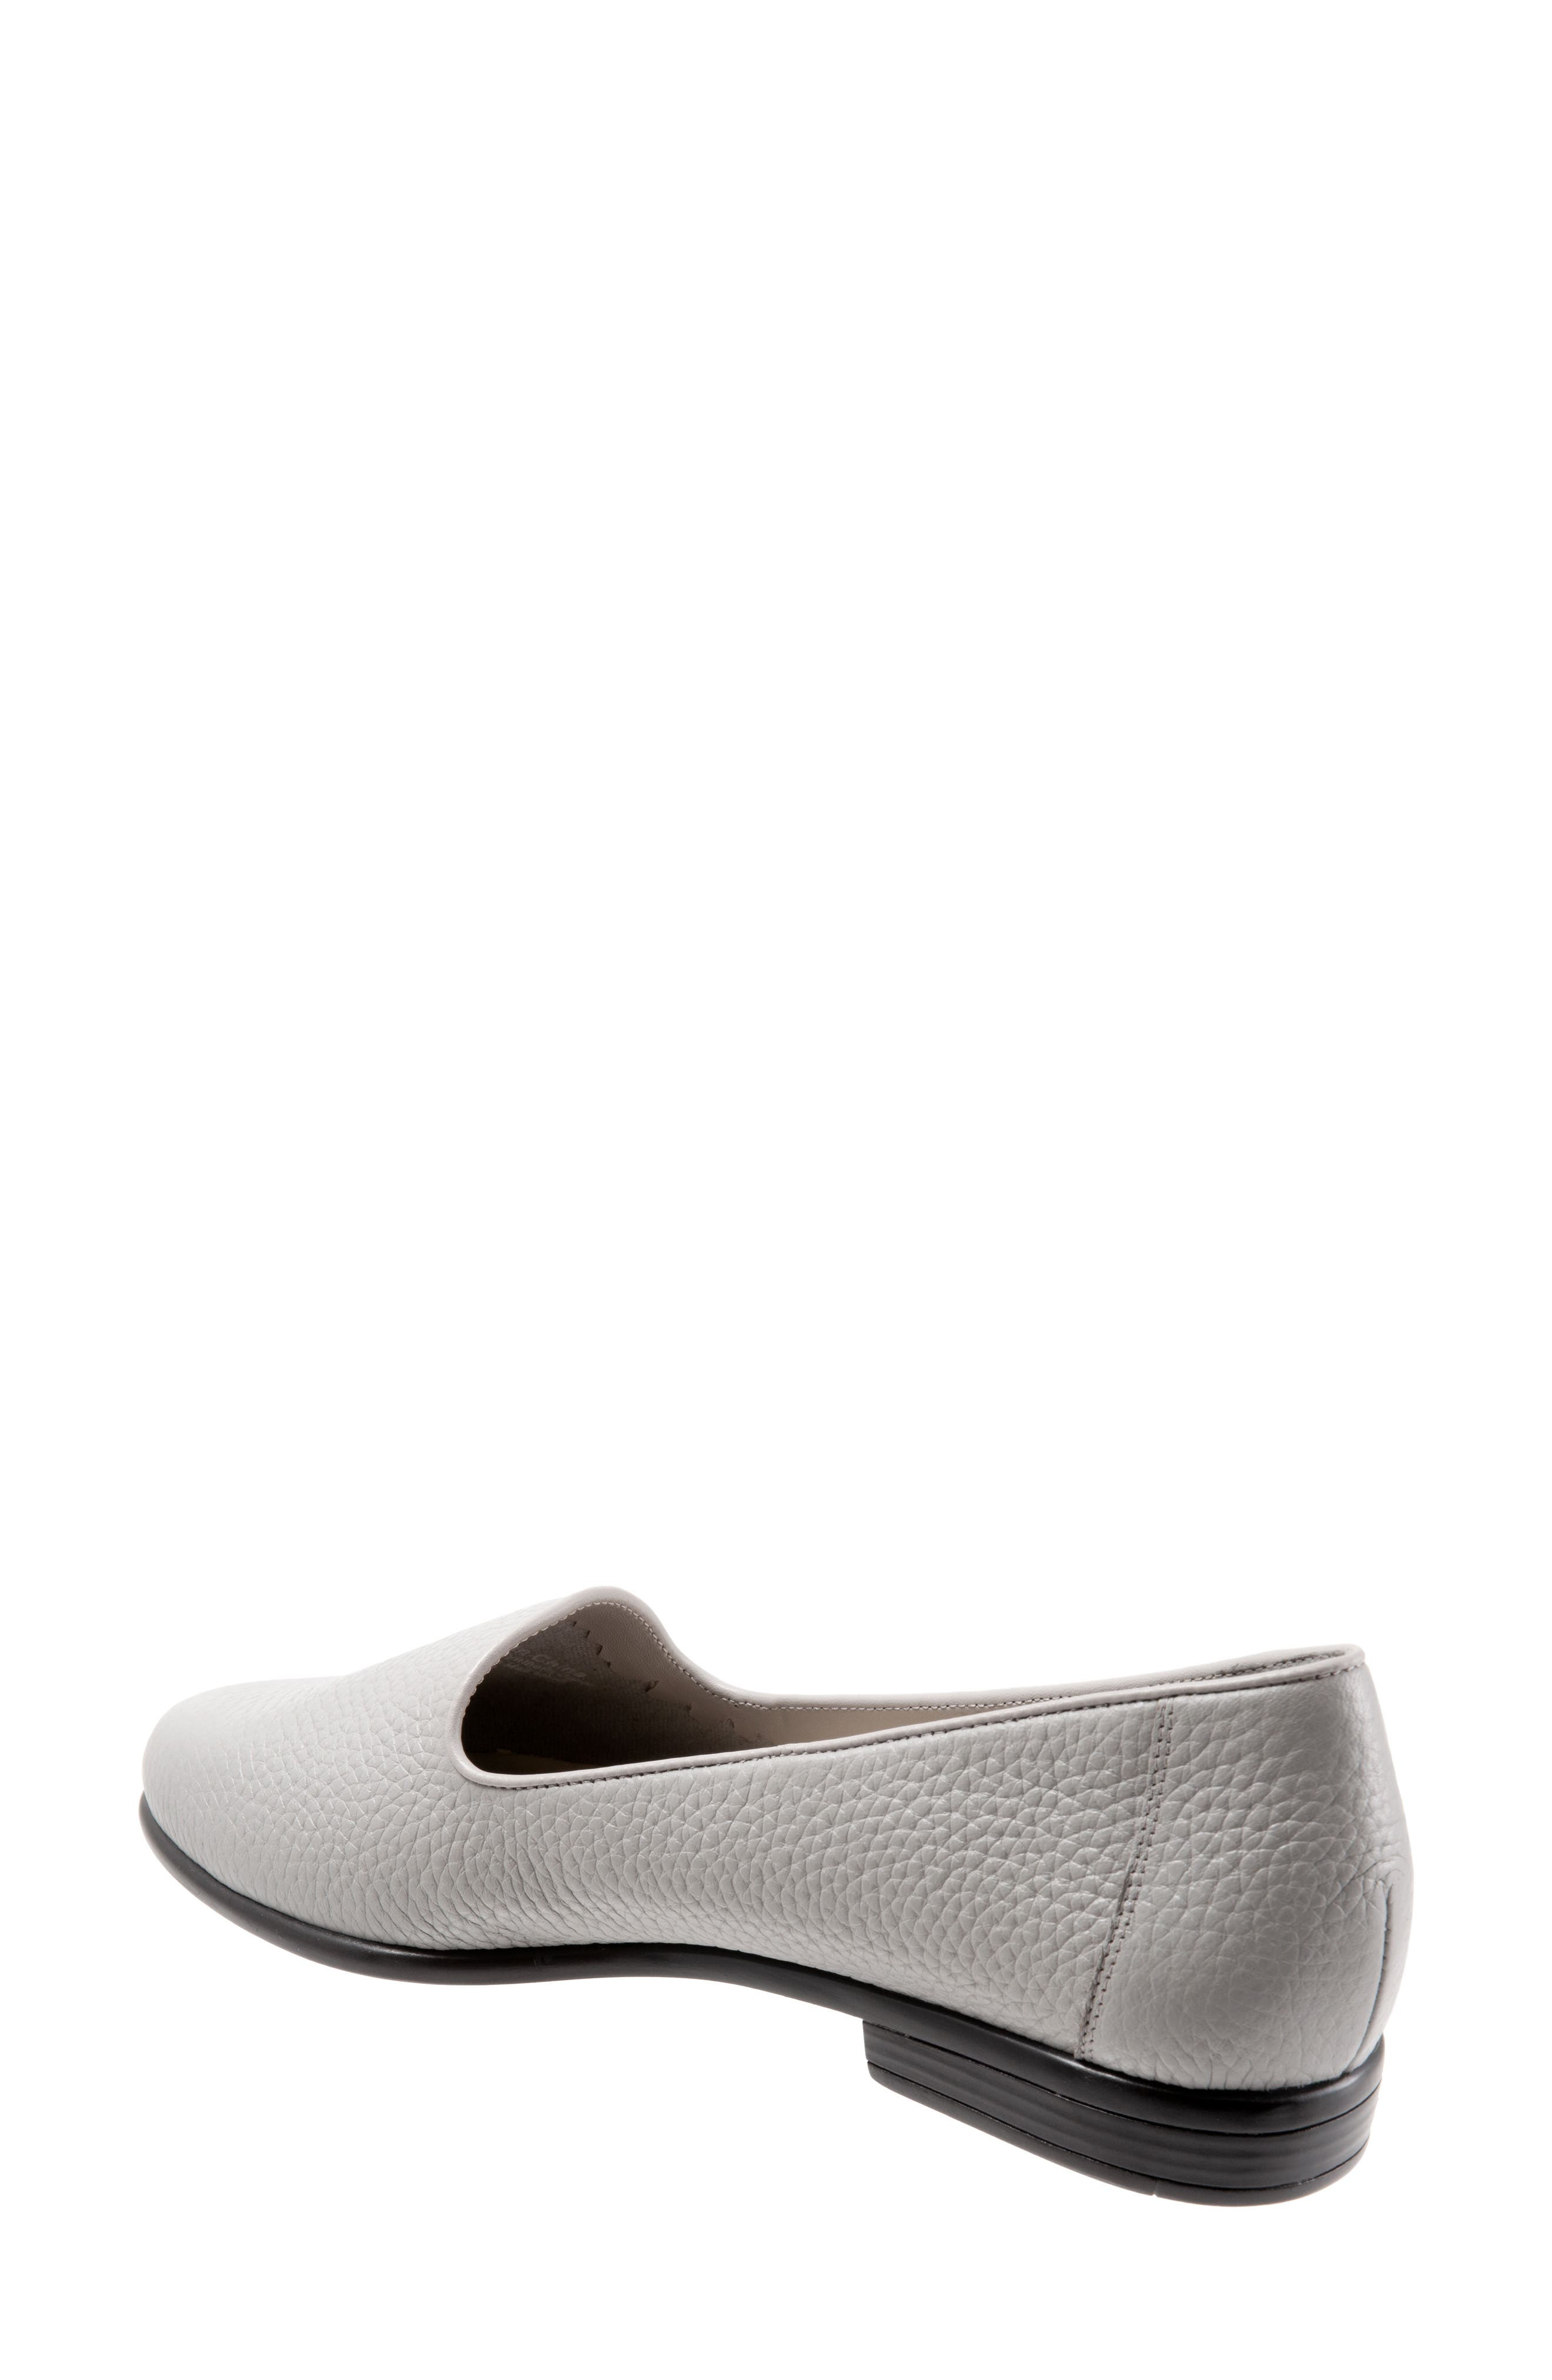 TROTTERS, Liz Loafer, Alternate thumbnail 2, color, GREY LEATHER